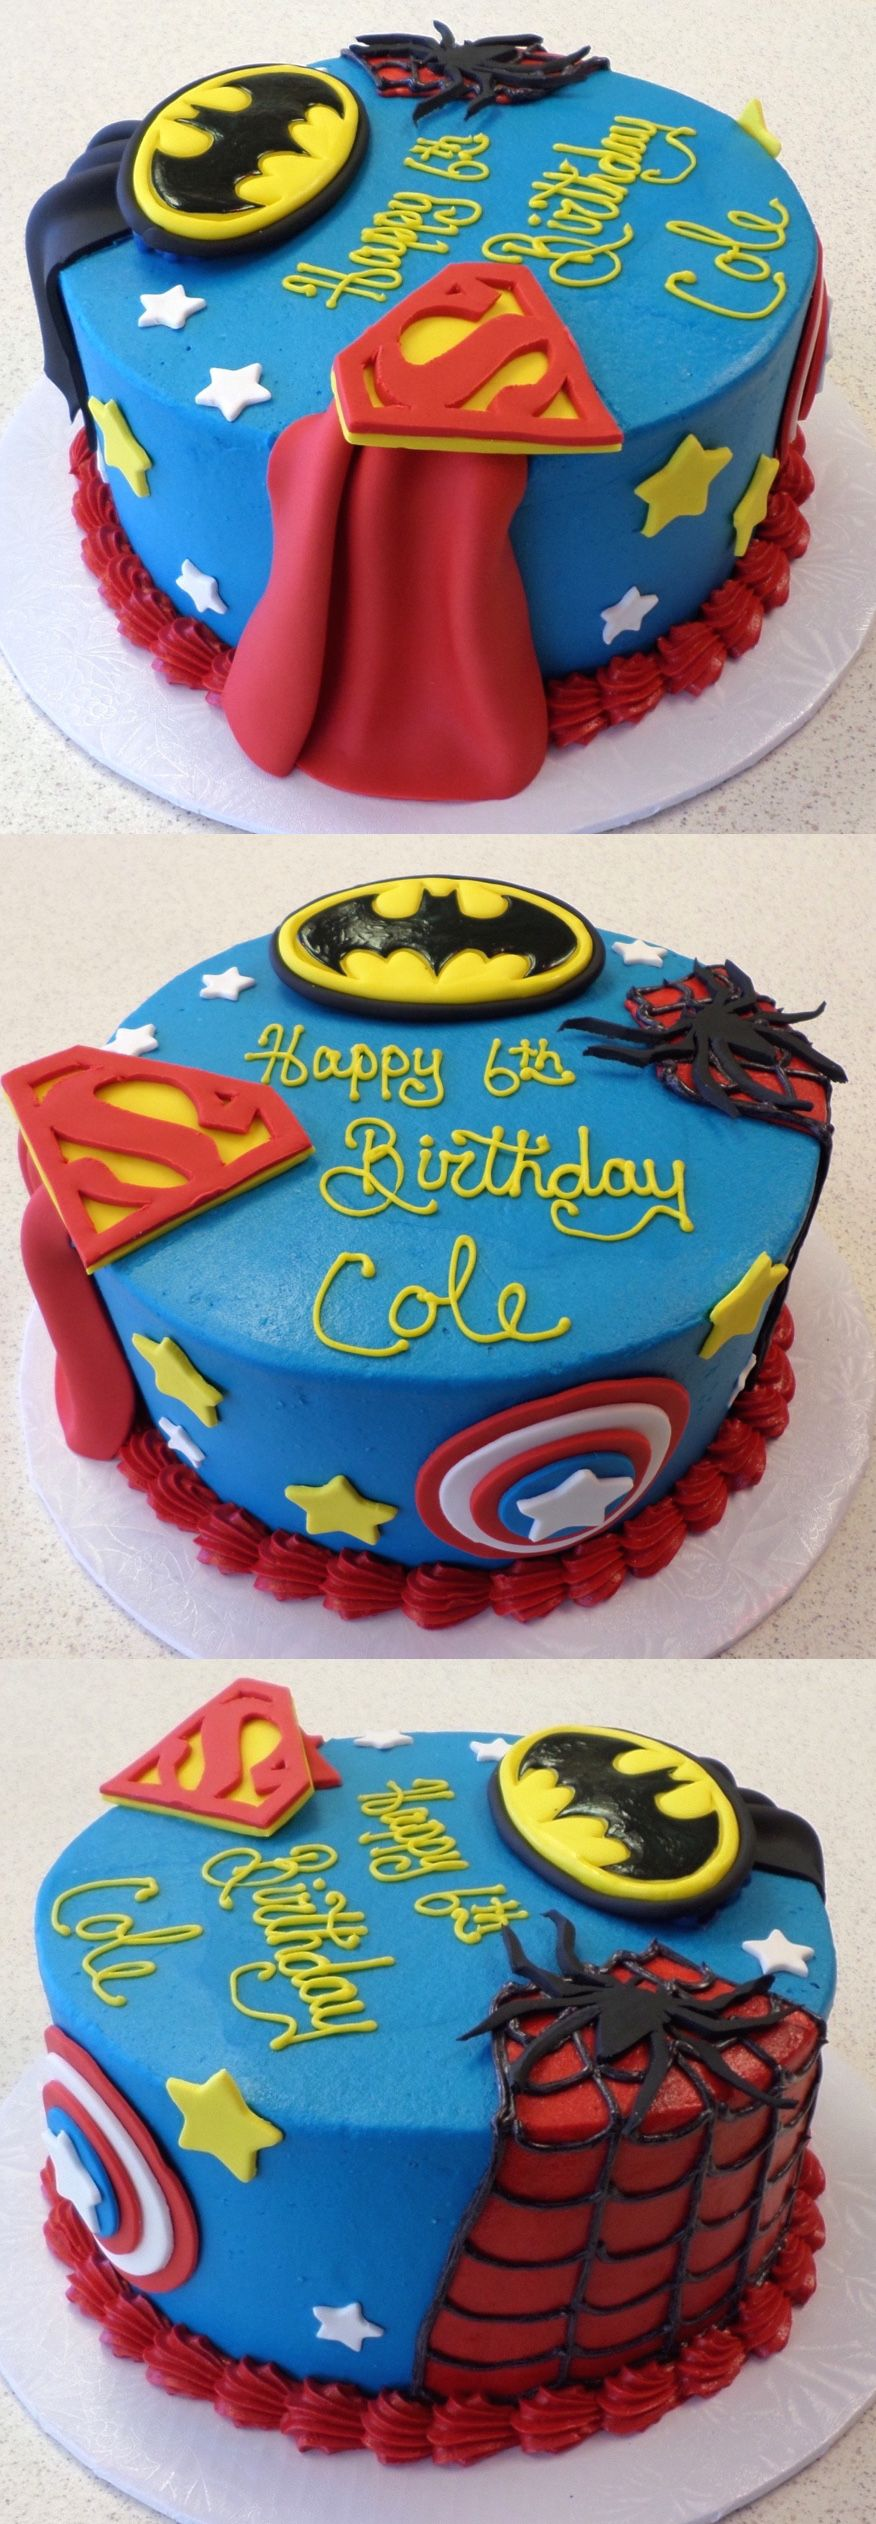 1000 ideas about superman cakes on pinterest batman cakes - Villains Wouldn T Stand A Chance Against This Superhero Cake Superman Batman Spider Man And Captain America Visit To Grab An Amazing Super Hero